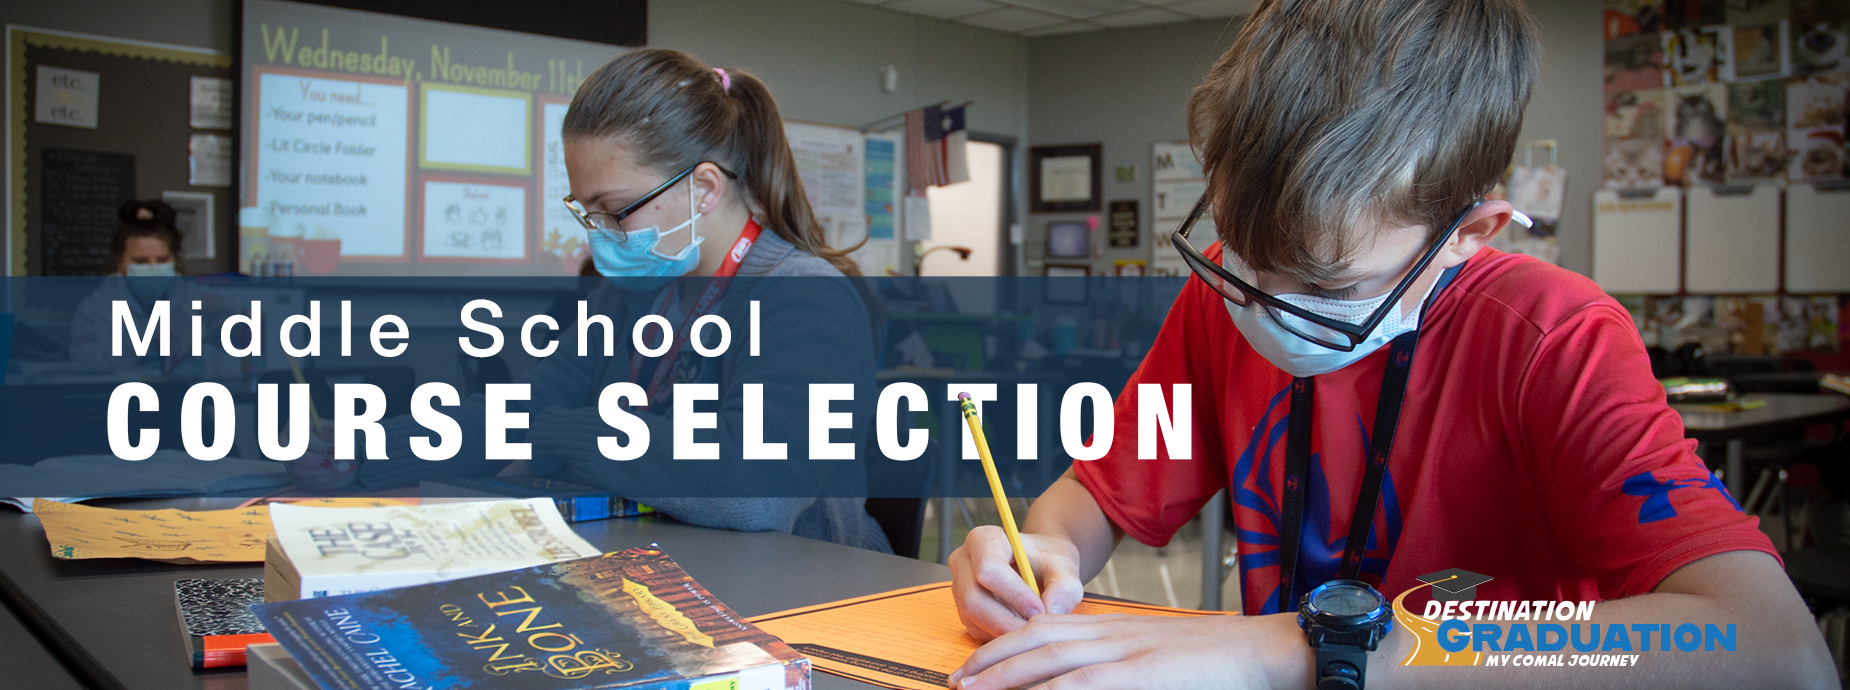 Middle School Selection Banner